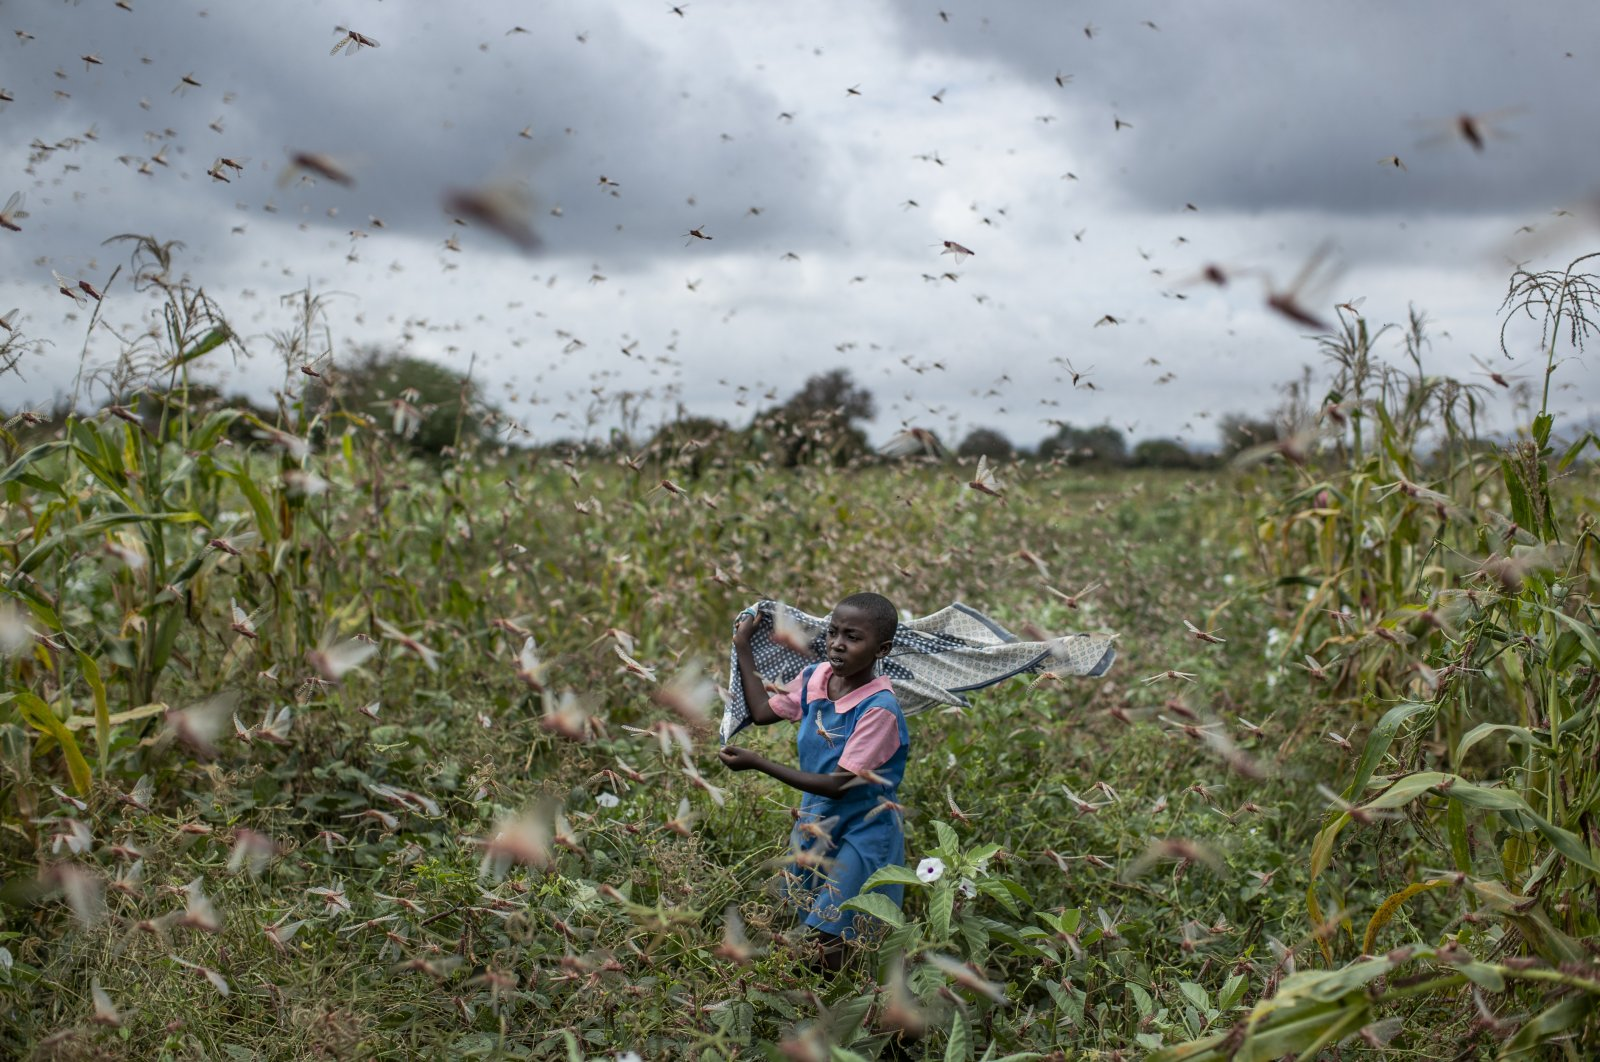 A farmer's daughter waves her shawl in the air to try to chase away swarms of desert locusts from her crops, in Katitika village, Kitui county, Kenya, Jan. 24, 2020. (AP Photo)